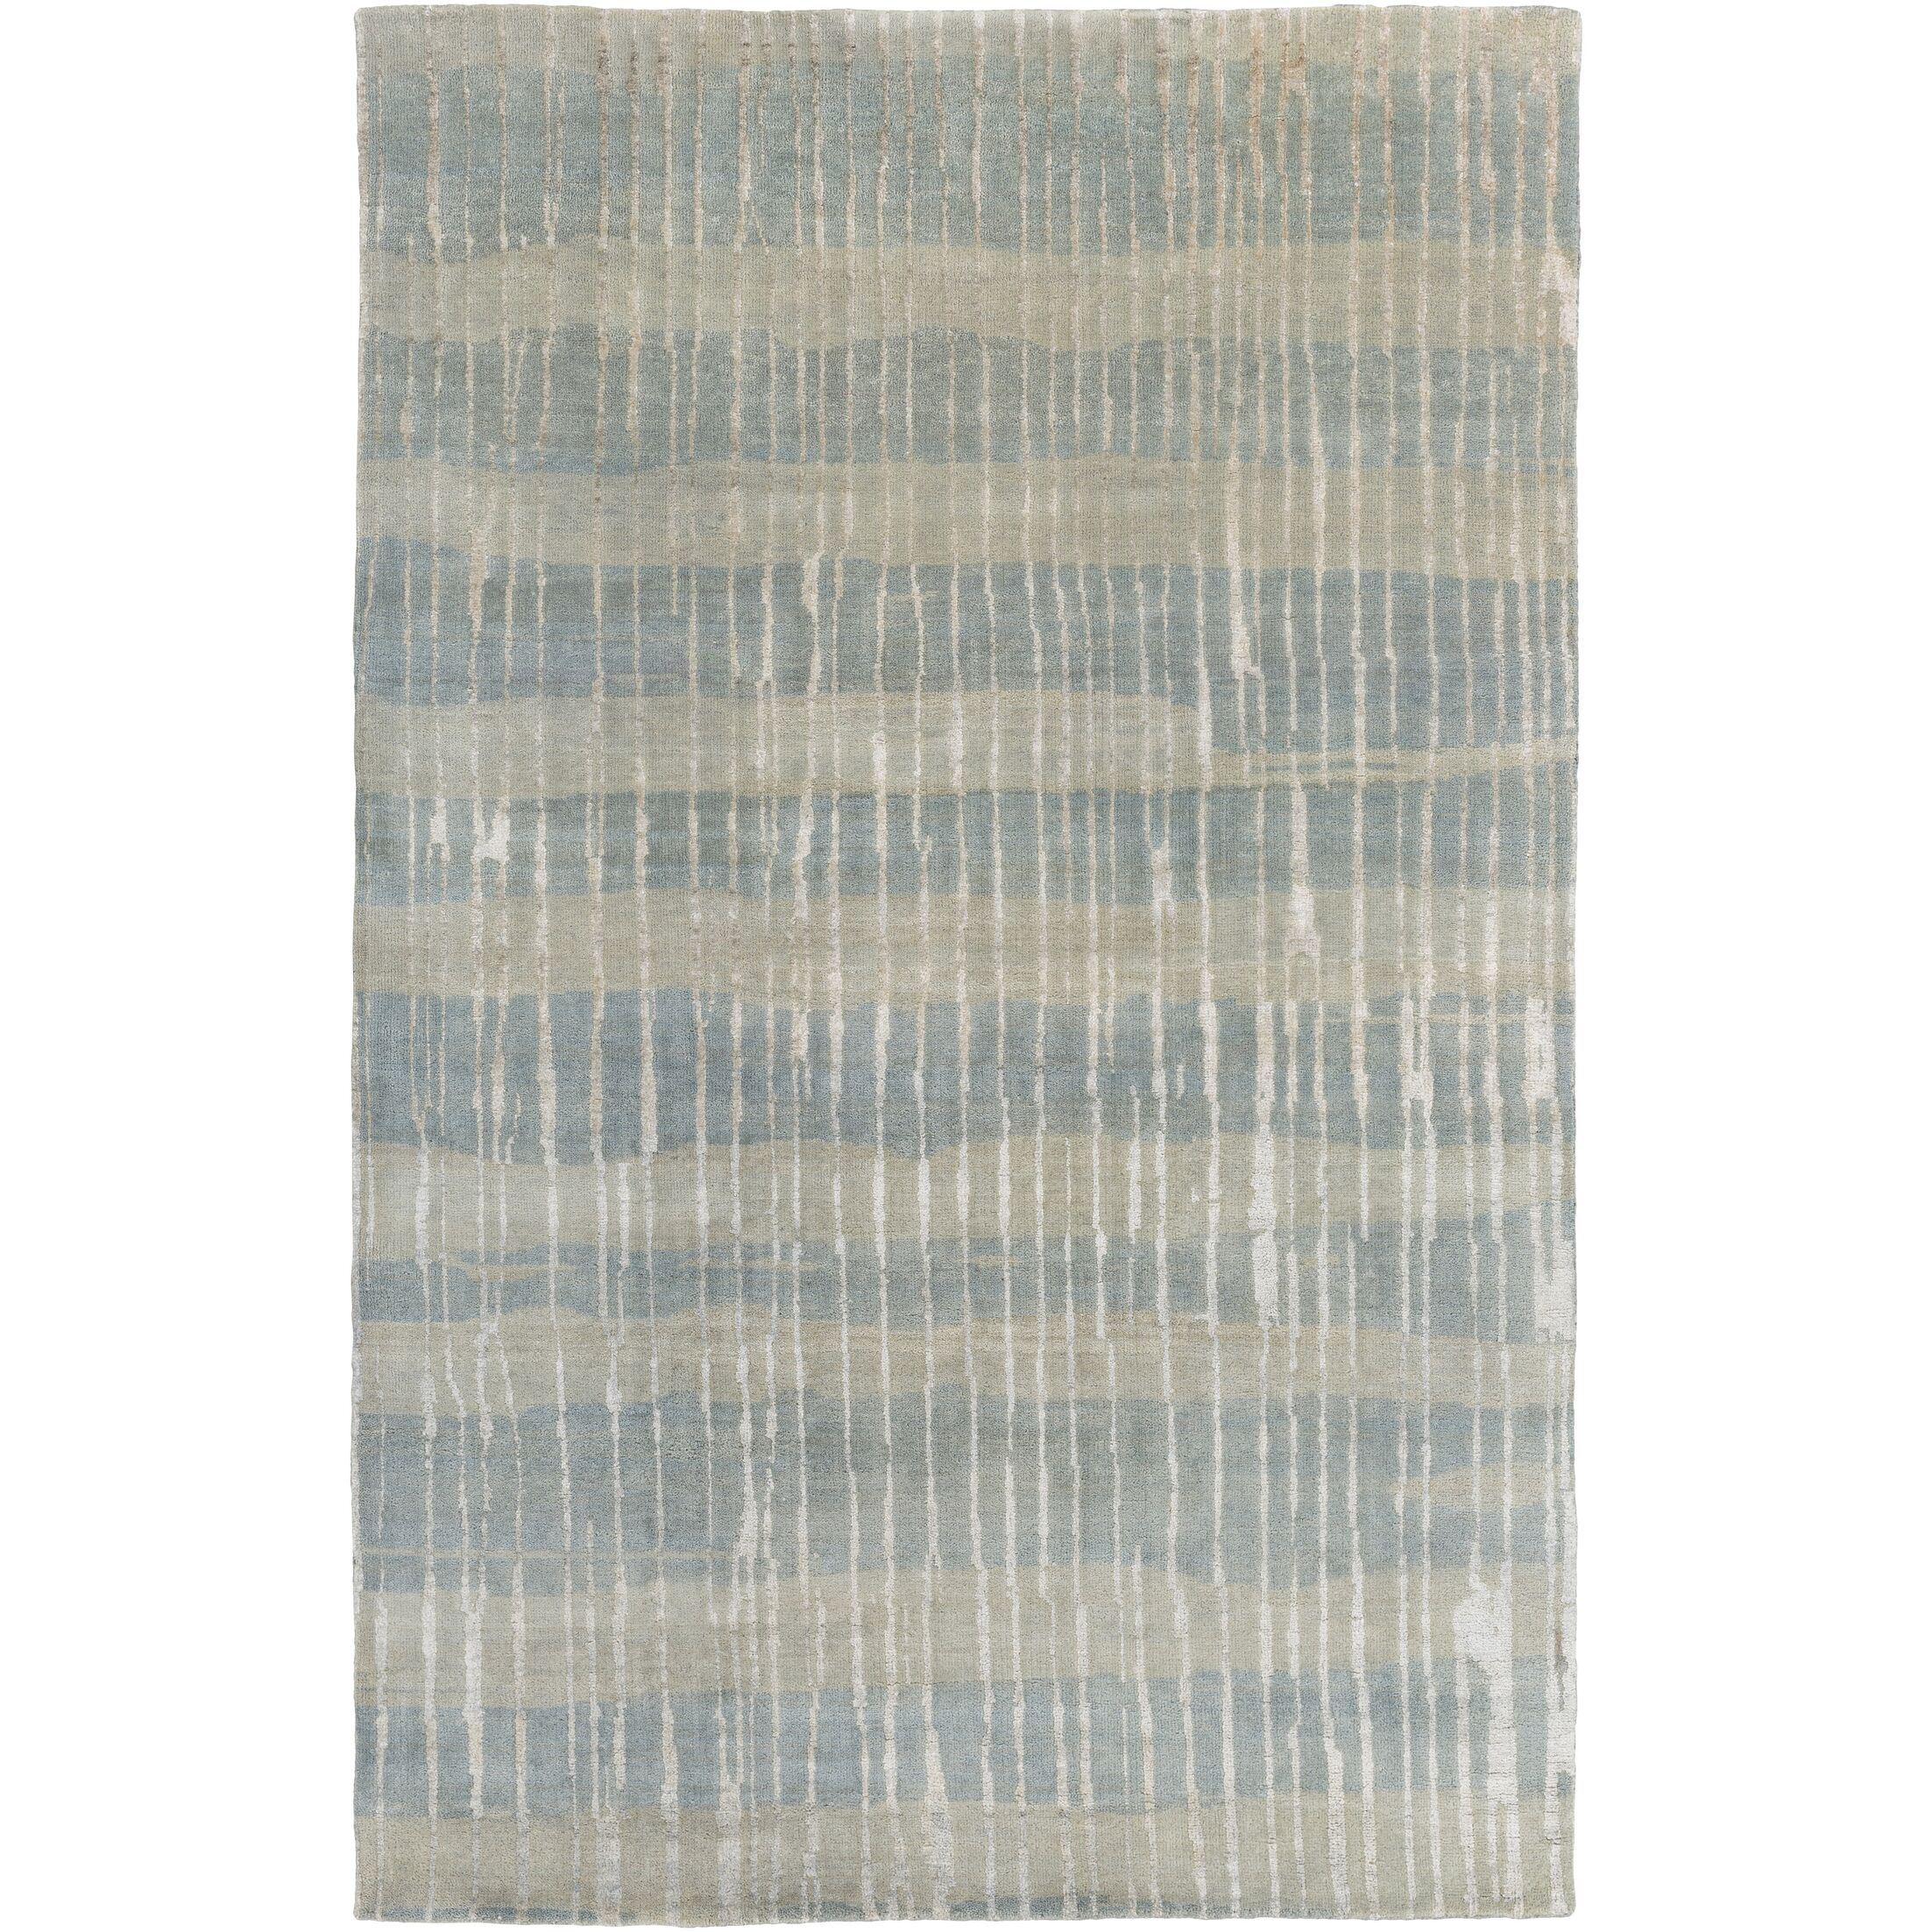 Sepviva Hand-Knotted Teal/Tan Area Rug Rug Size: Rectangle 2' x 3'